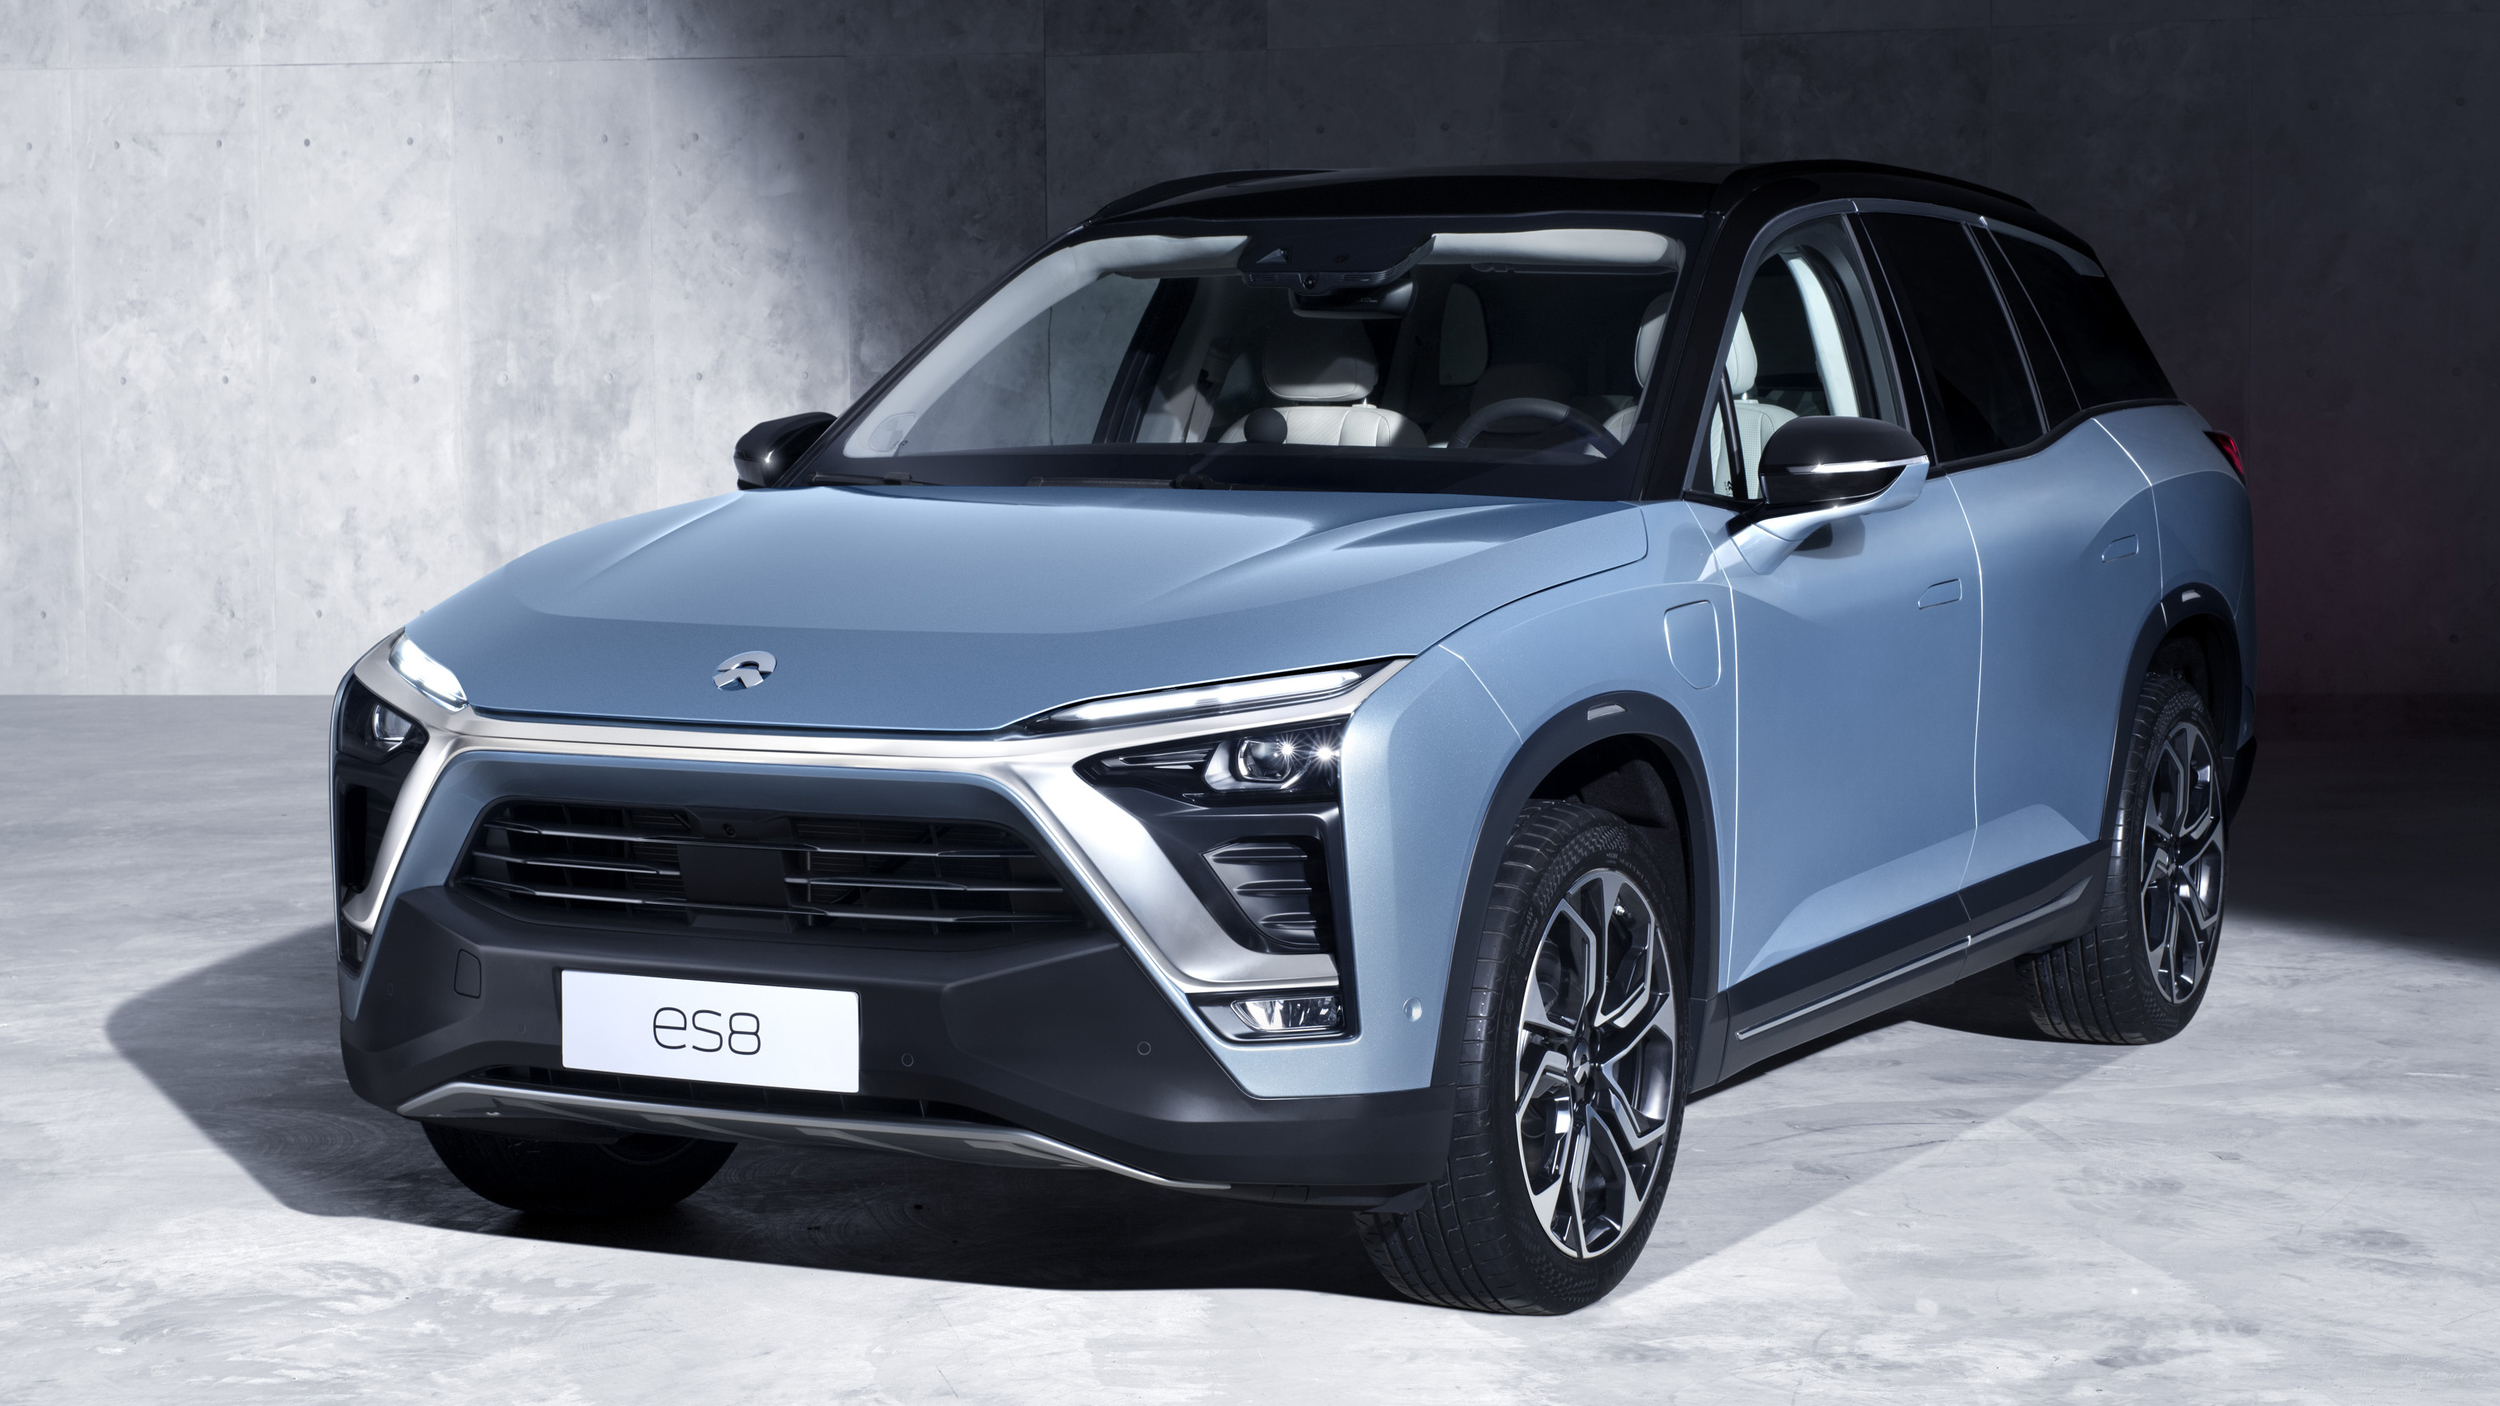 NIO launches its ES8 all-electric SUV in China